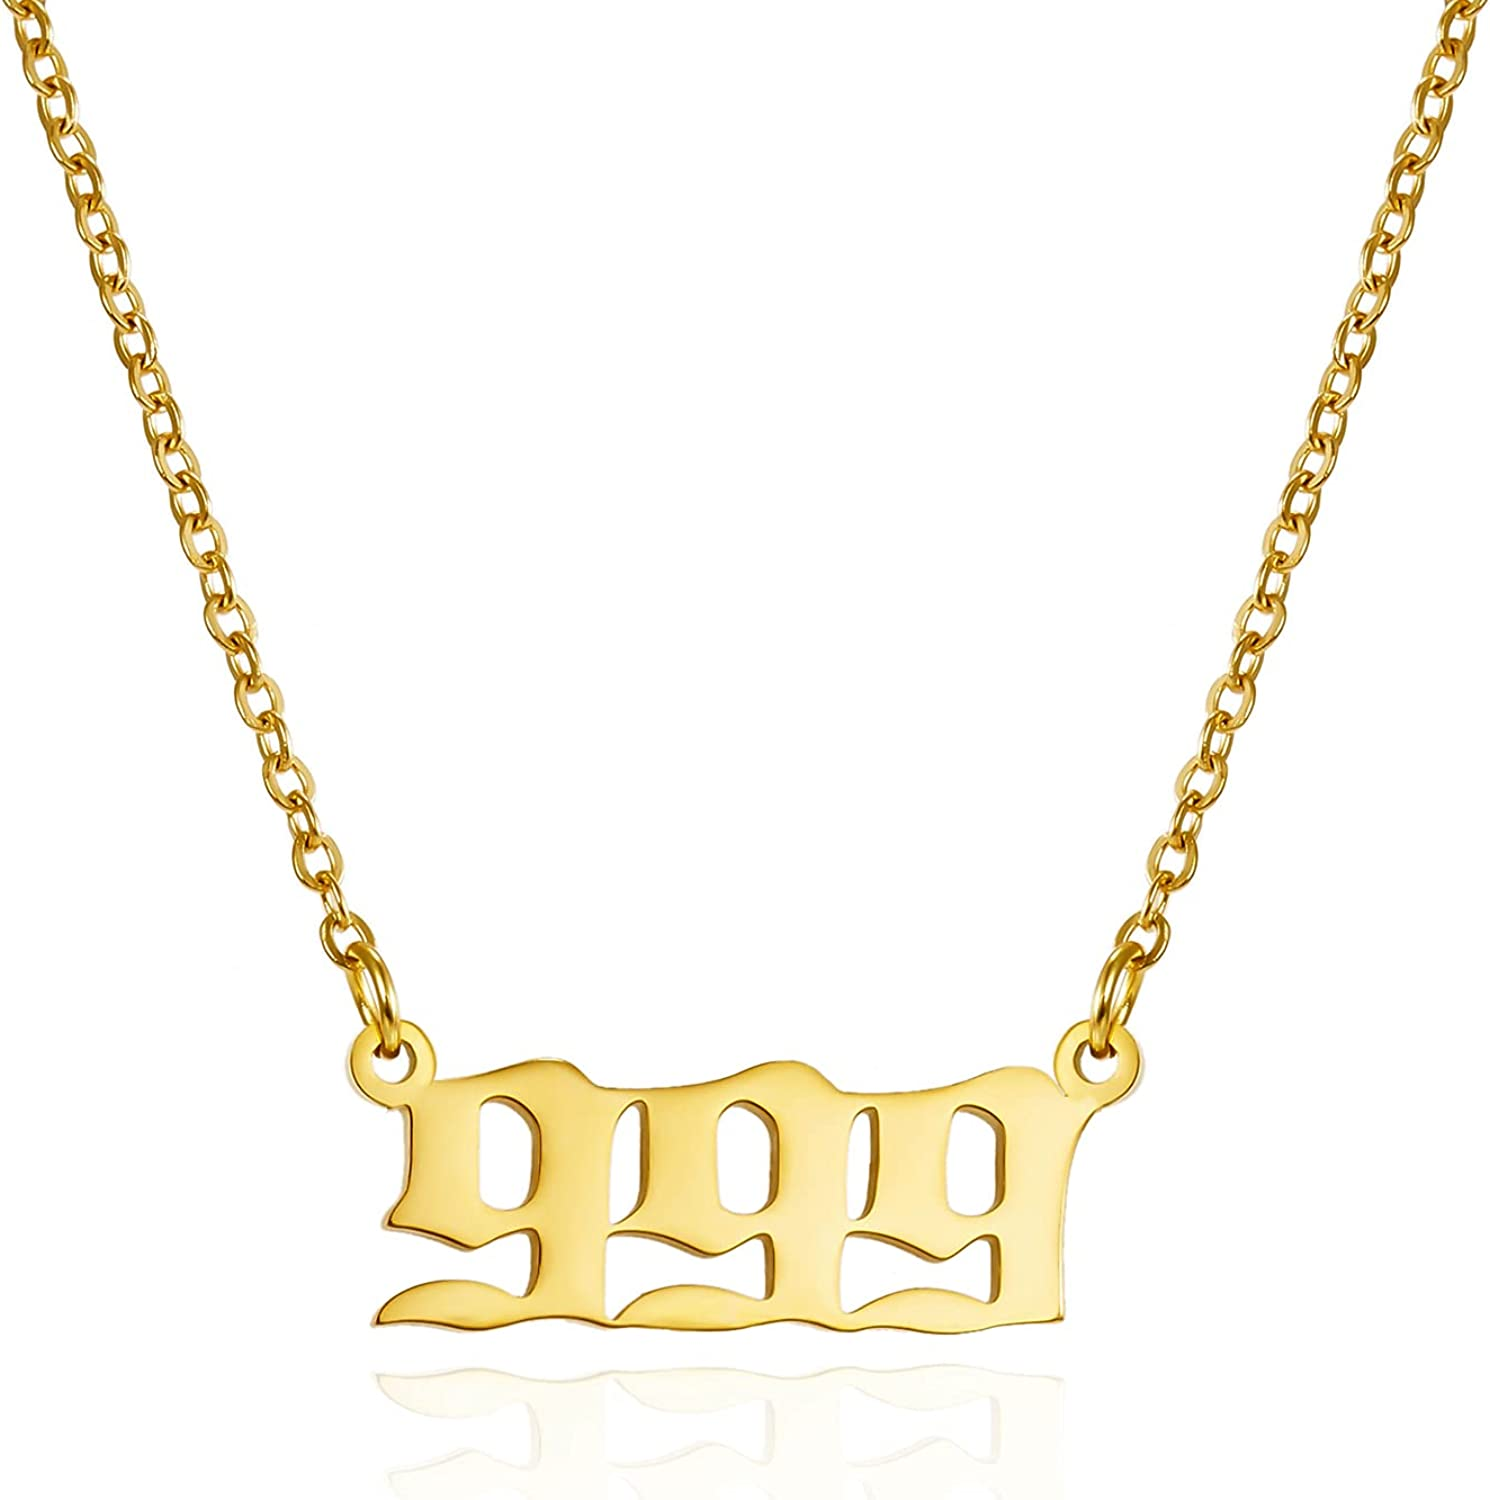 Stainless Steel Angel Number Necklace 111 222 333 444 555 666 777 888 999 Stainless Steel Pendants Necklace Chain Numerology Jewelry